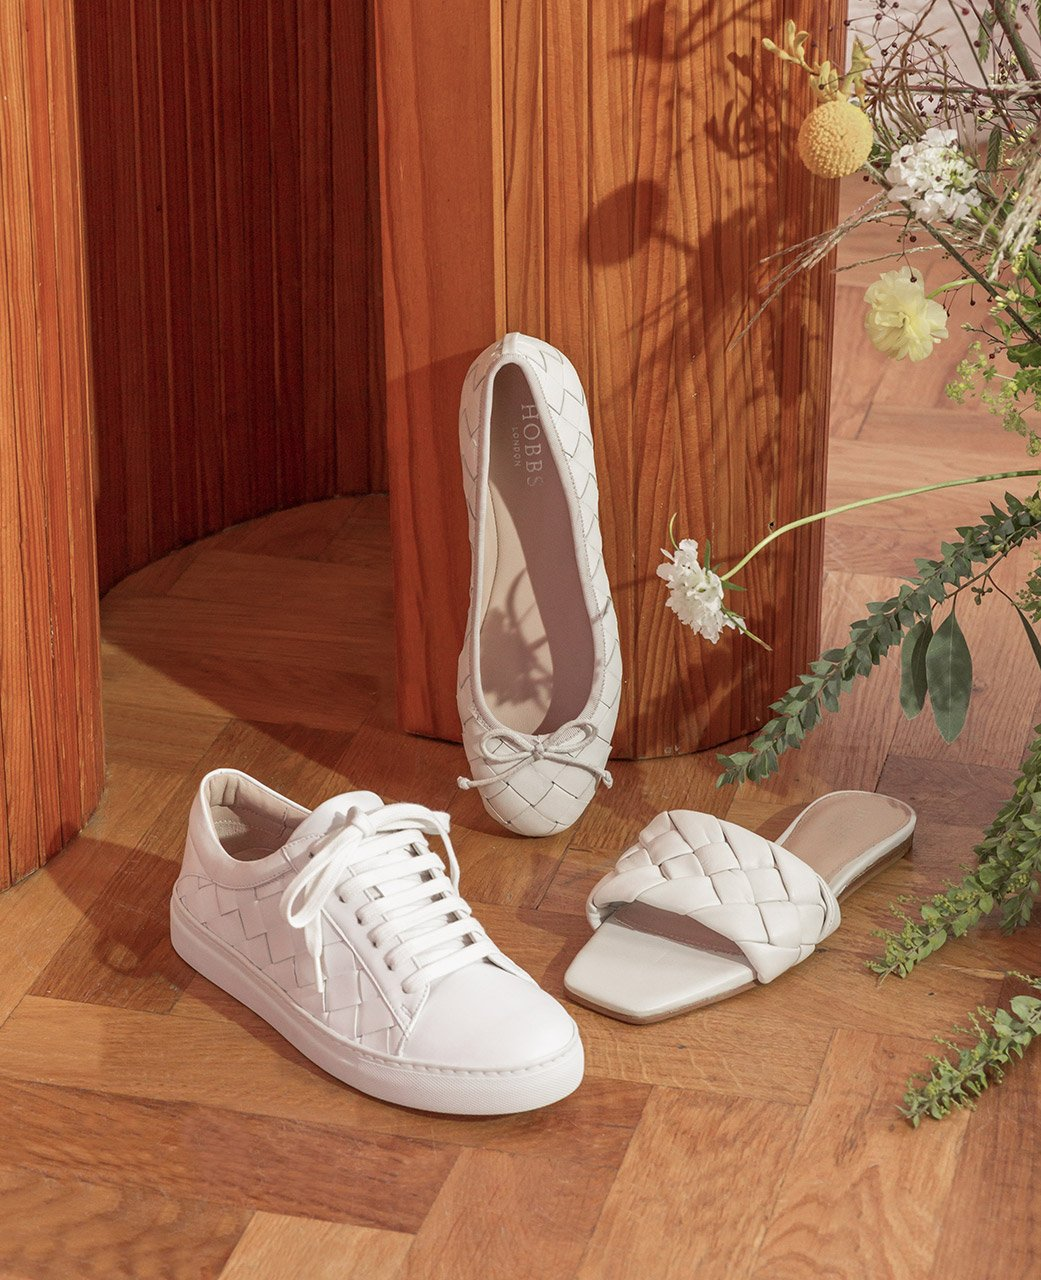 Woven Leather White Trainers, Ballerina and Sandal